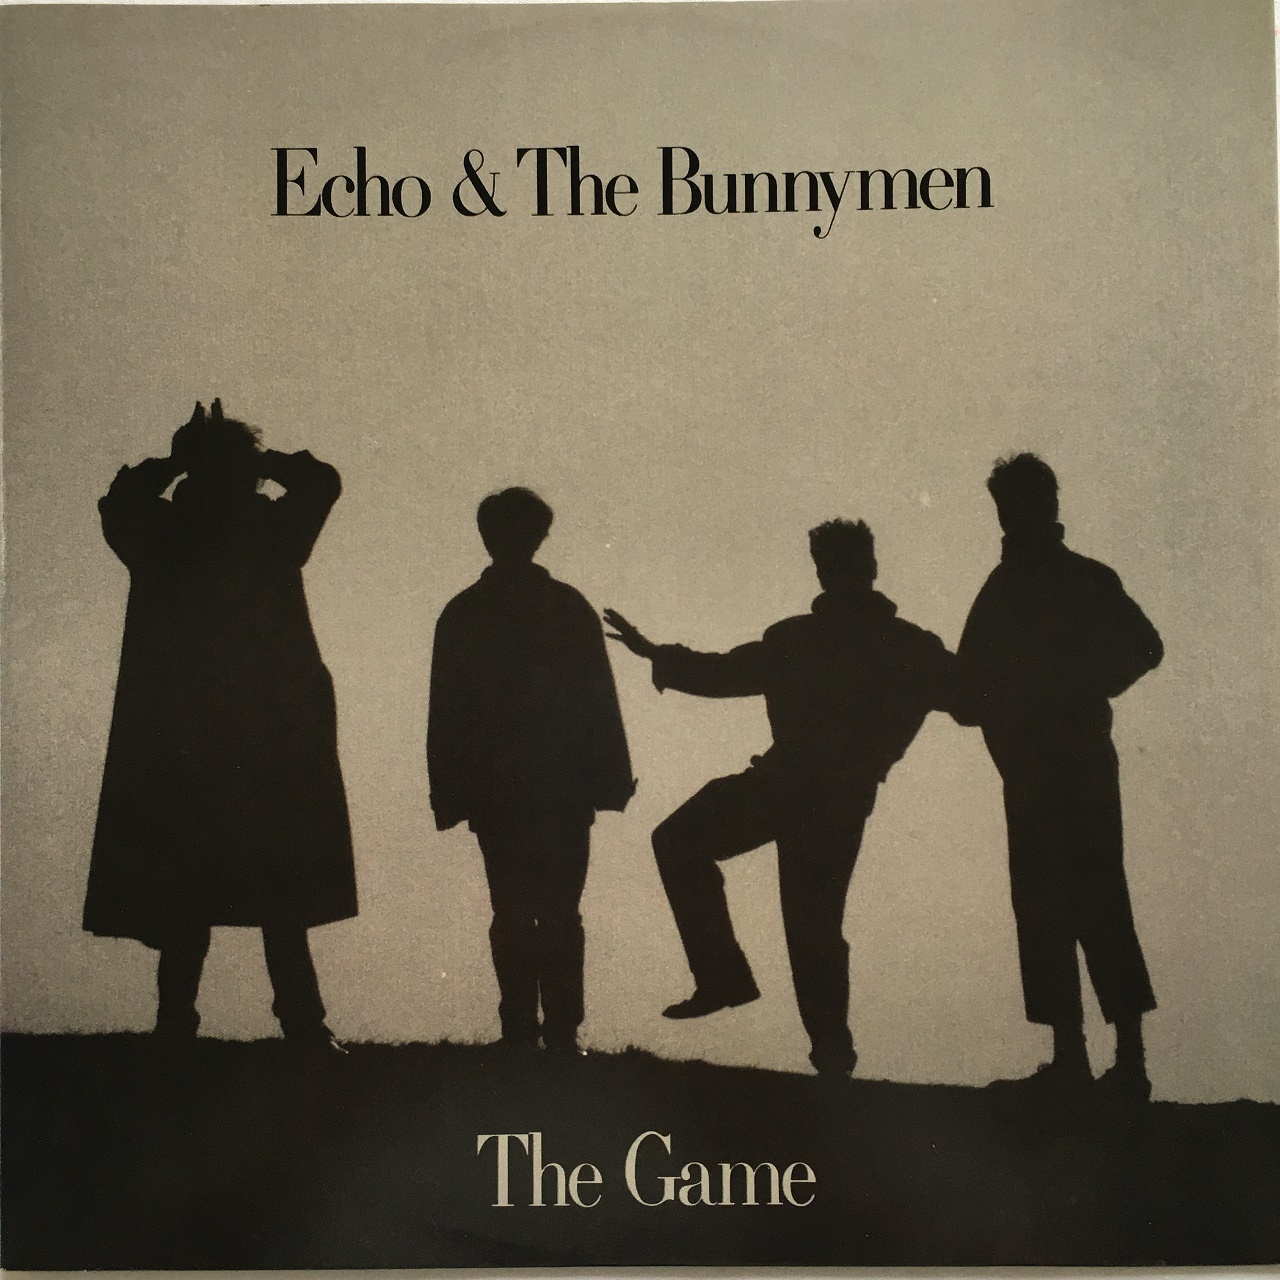 【12inch・英盤】Echo & The Bunnymen / The Game